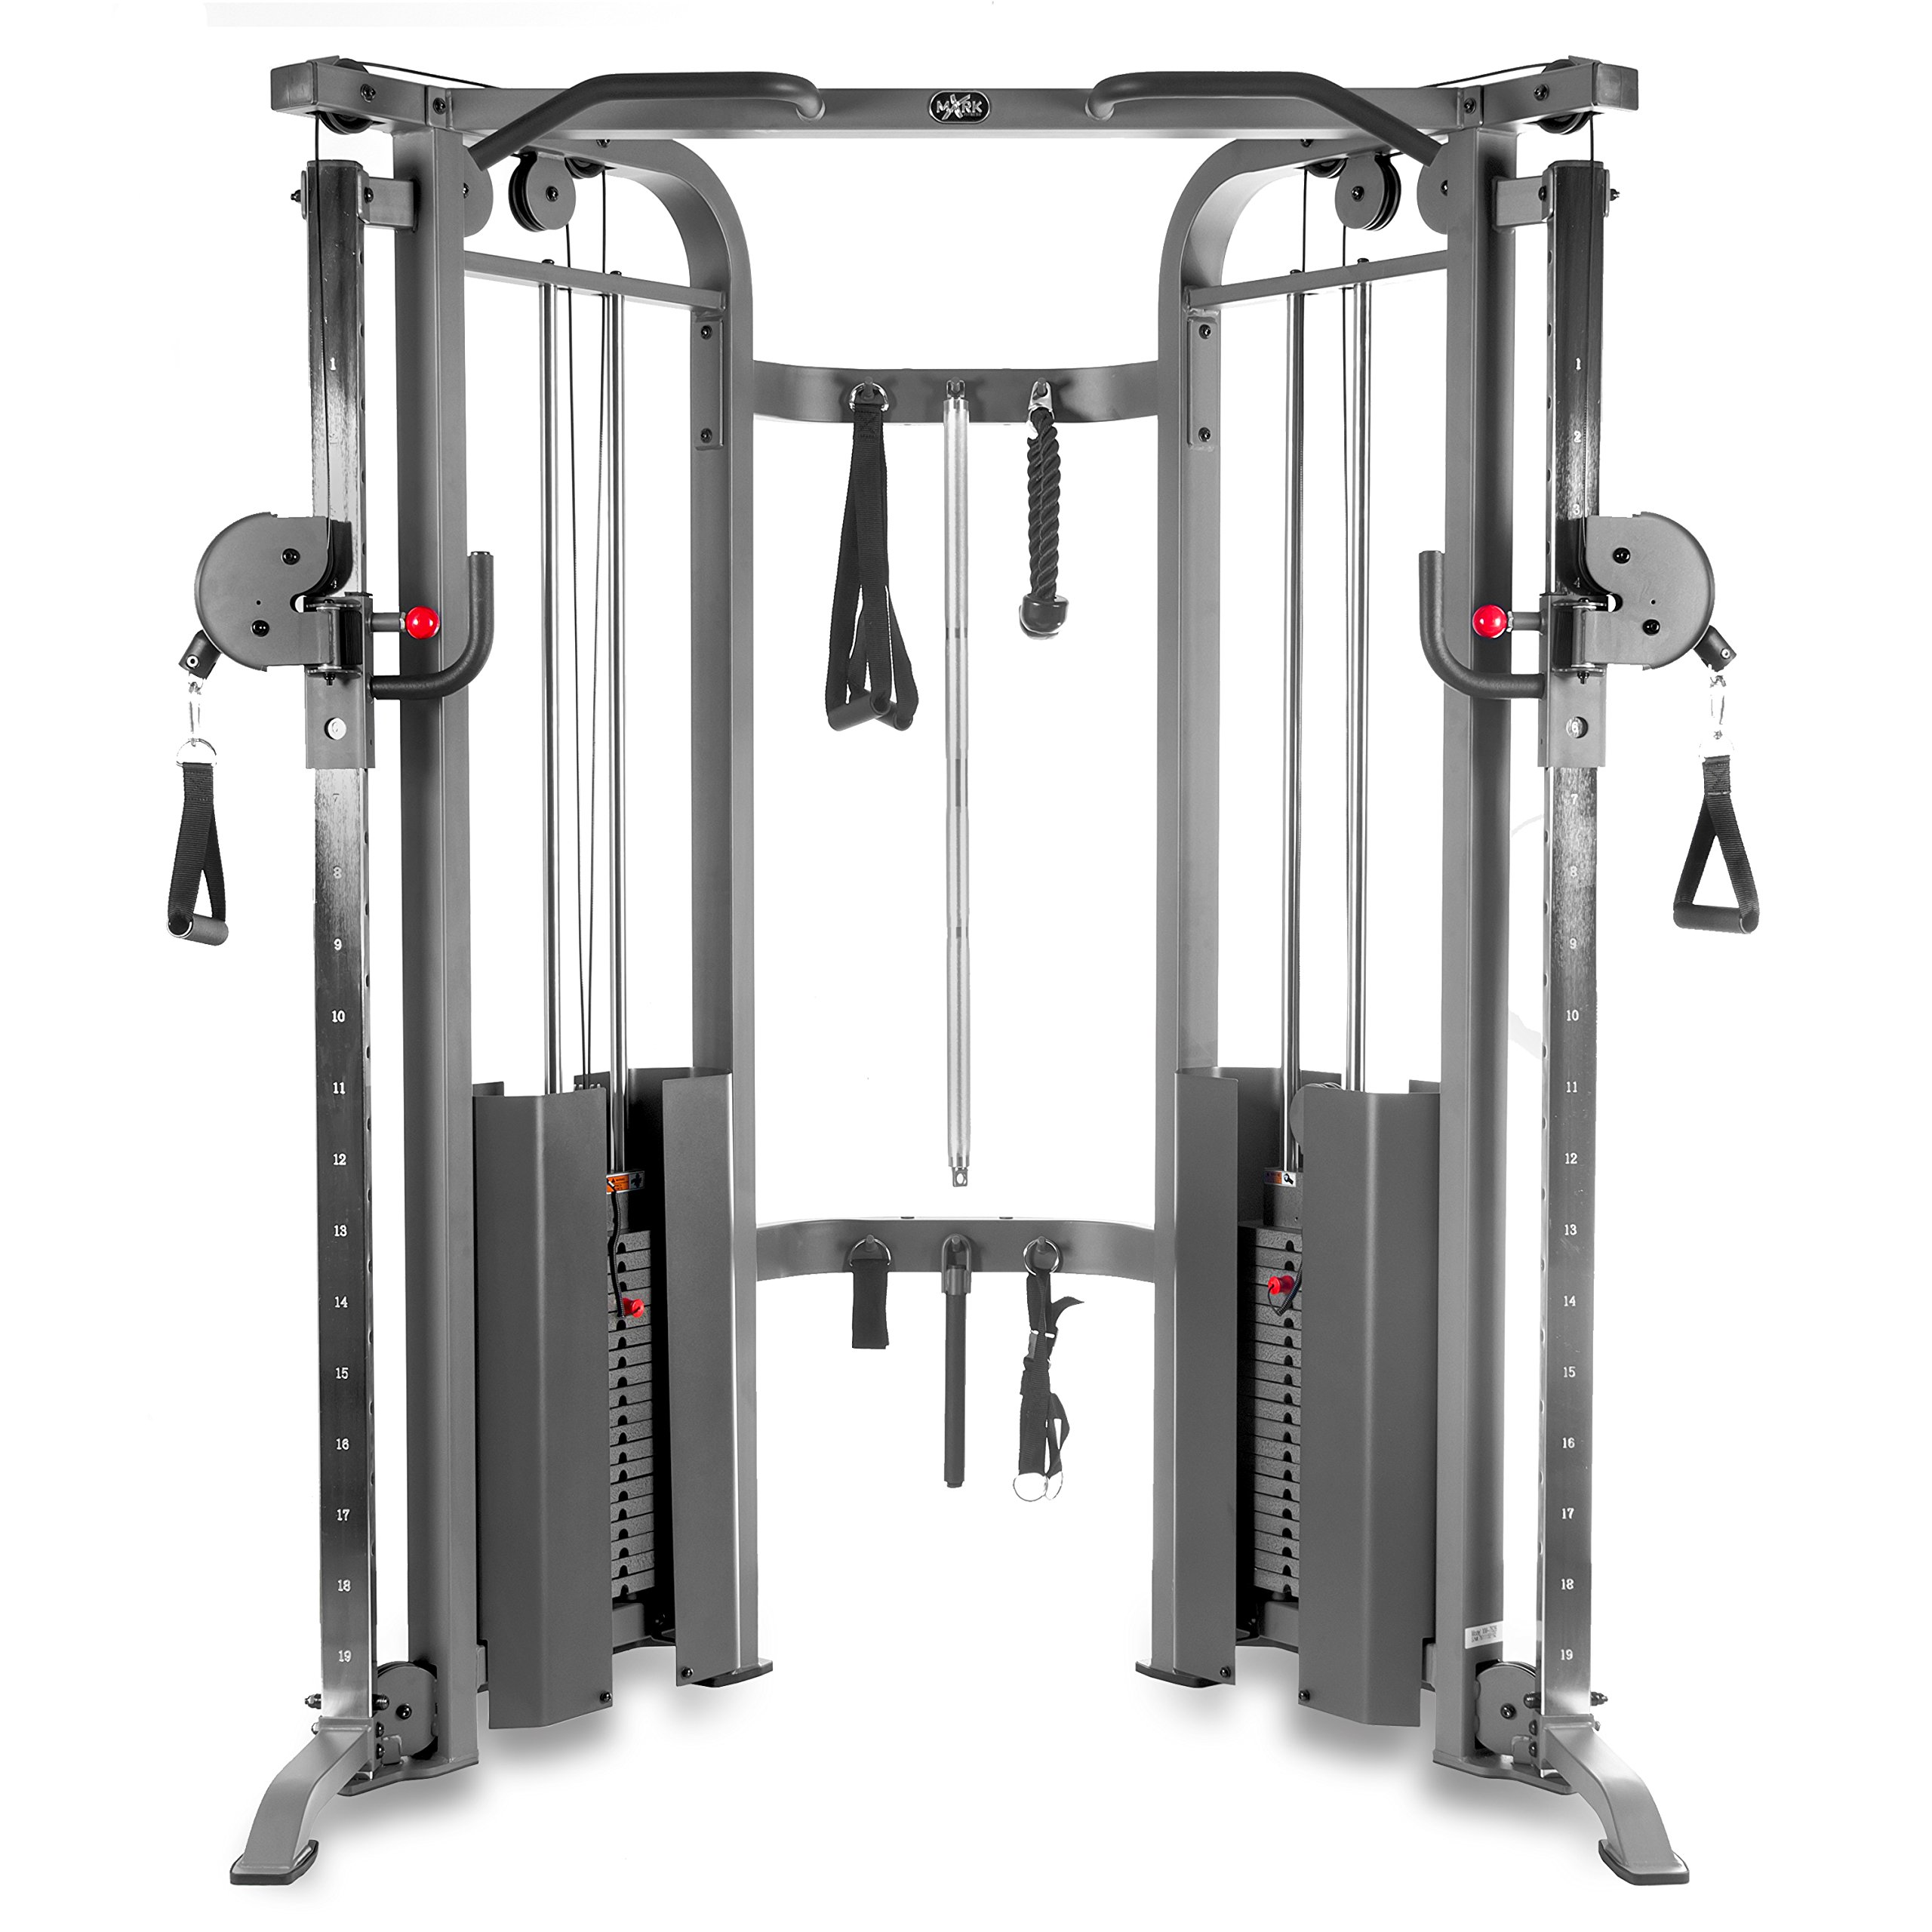 XMark Functional Trainer Cable Machine Dual 200 lb Weight Stacks Gray White 19 Adjustments an Upgraded Accessory Package